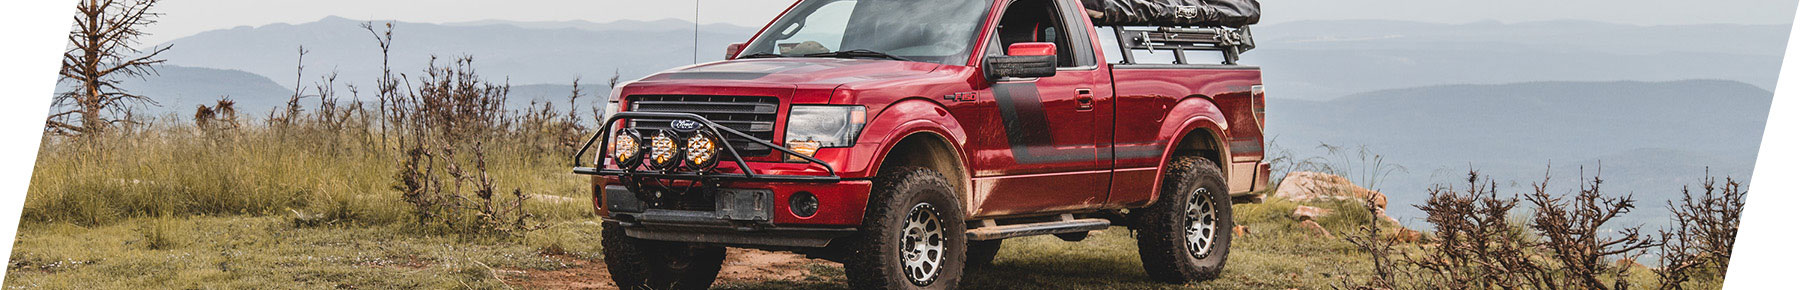 2011-2014 F150 3.5L EcoBoost Performance Parts and Accessories